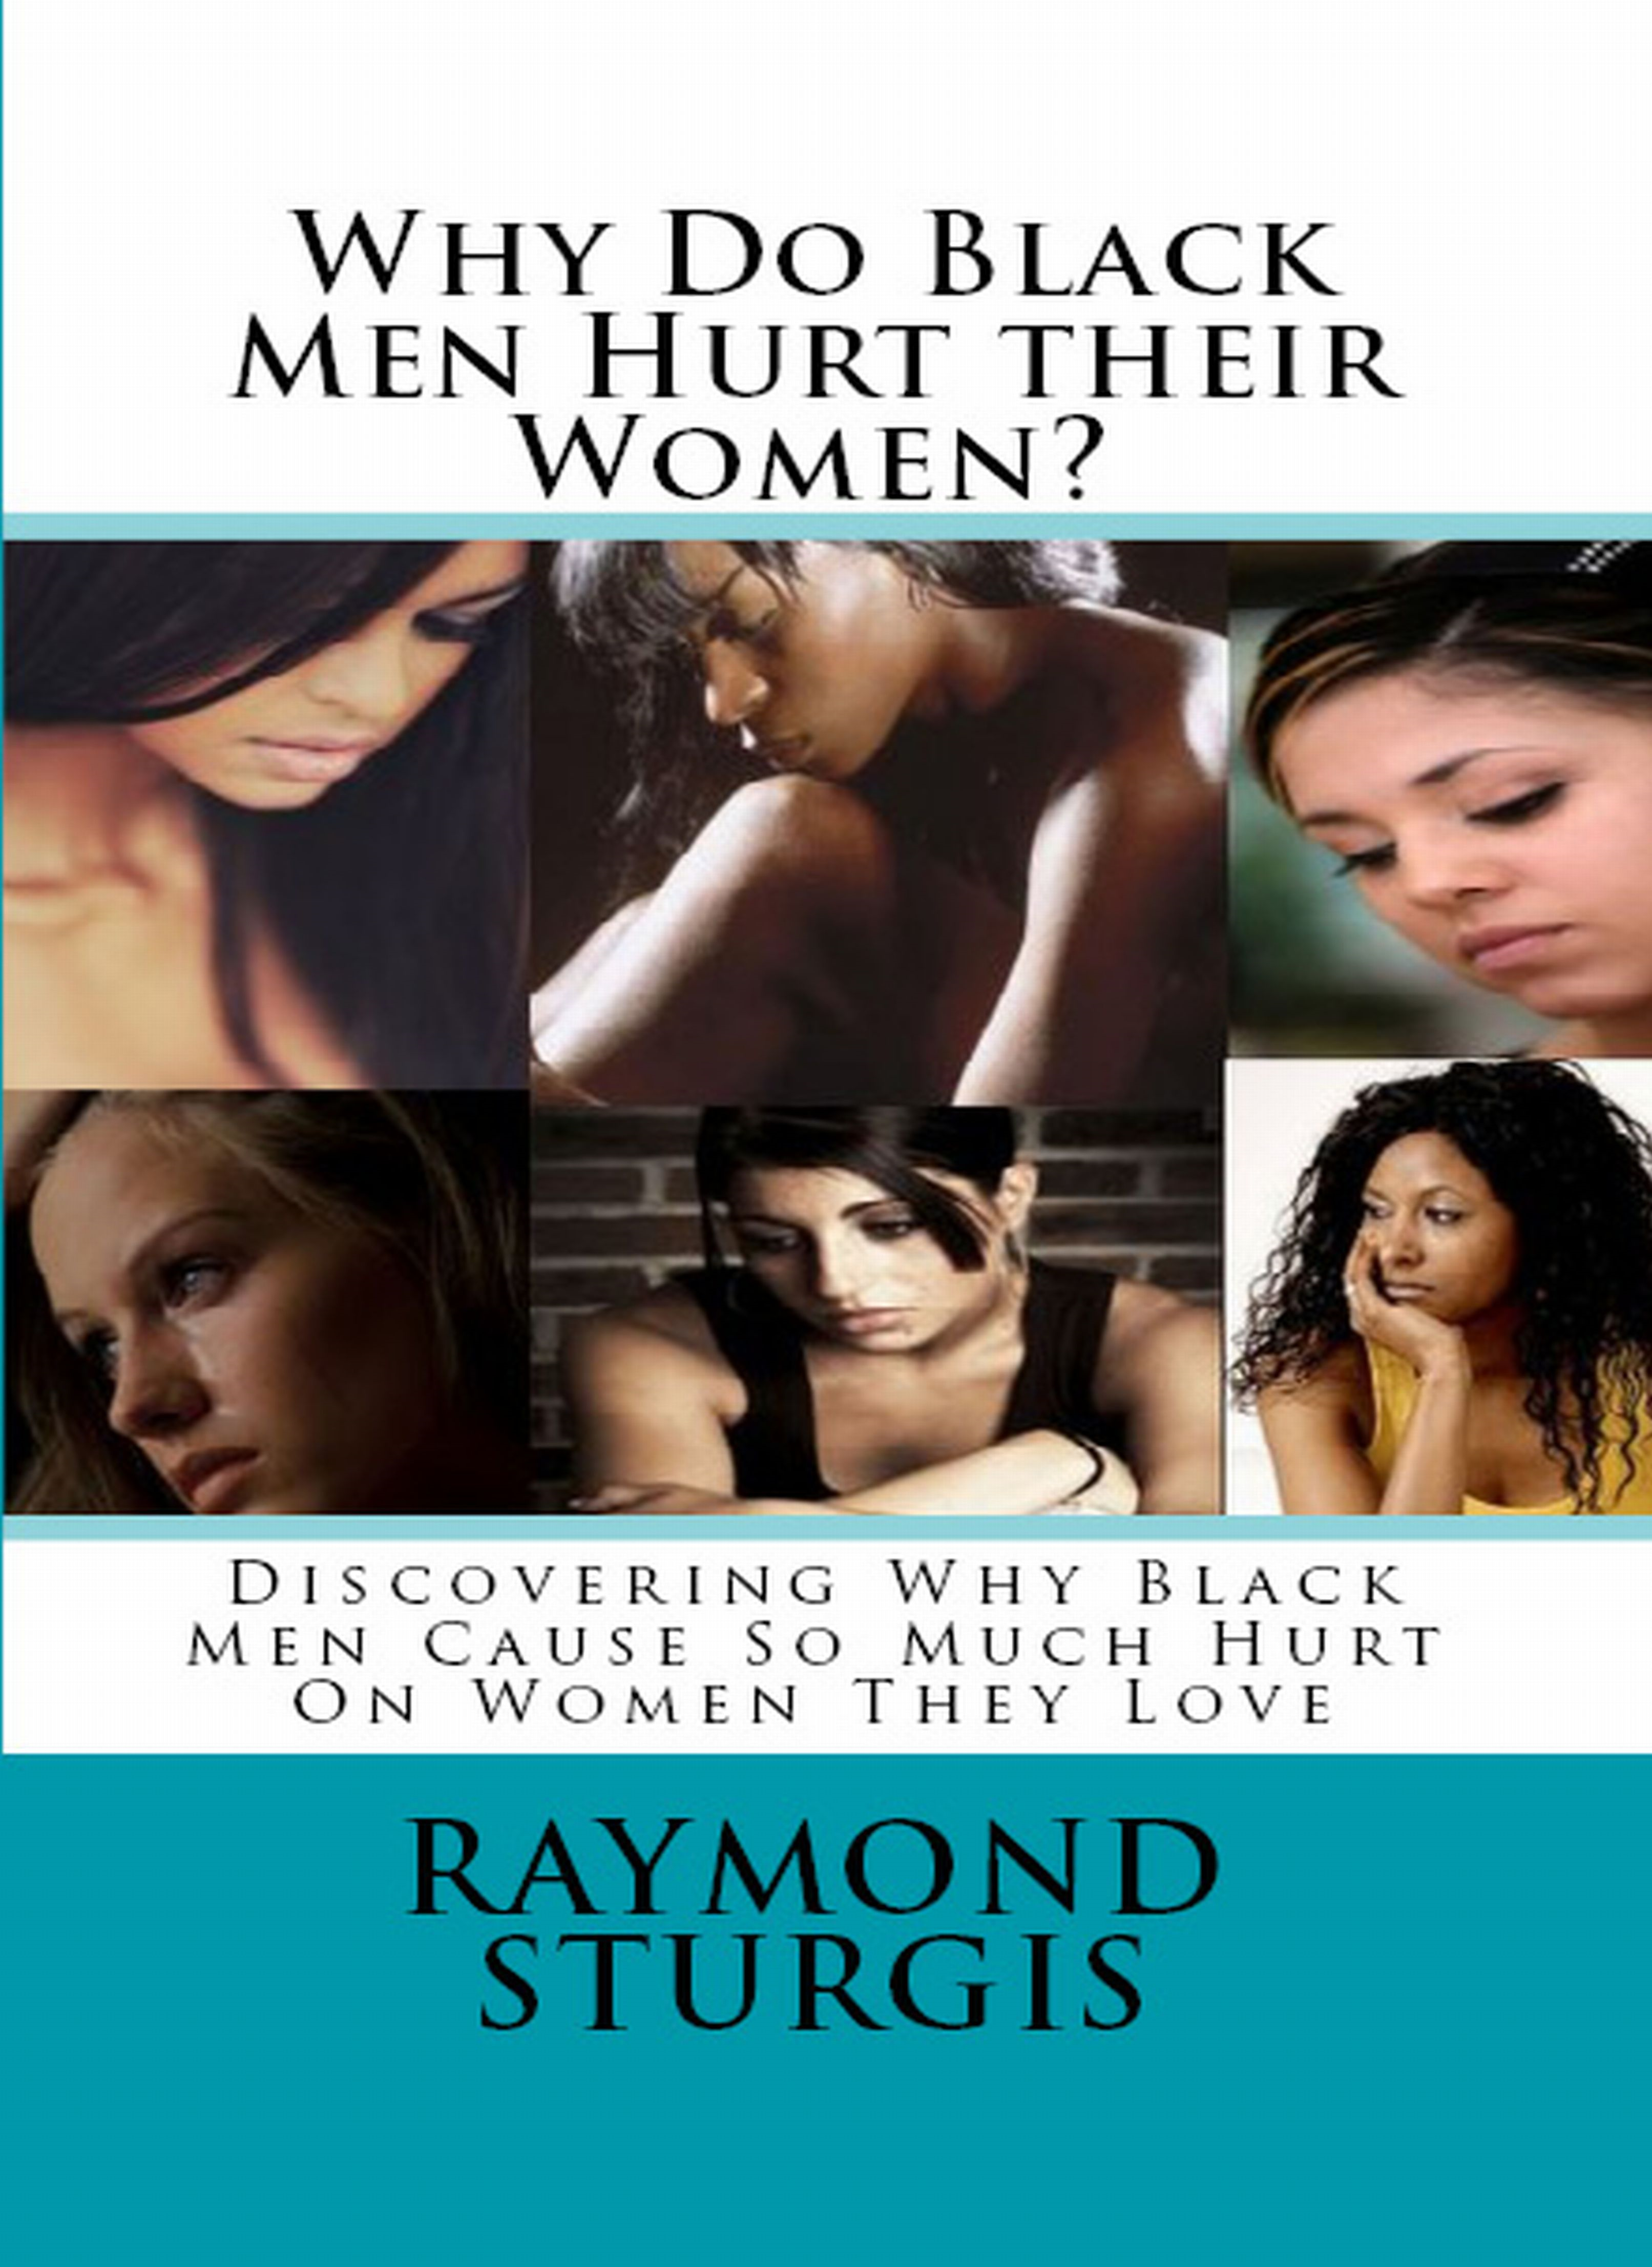 Why Do Black Men Hurt their Women? By: Raymond Sturgis